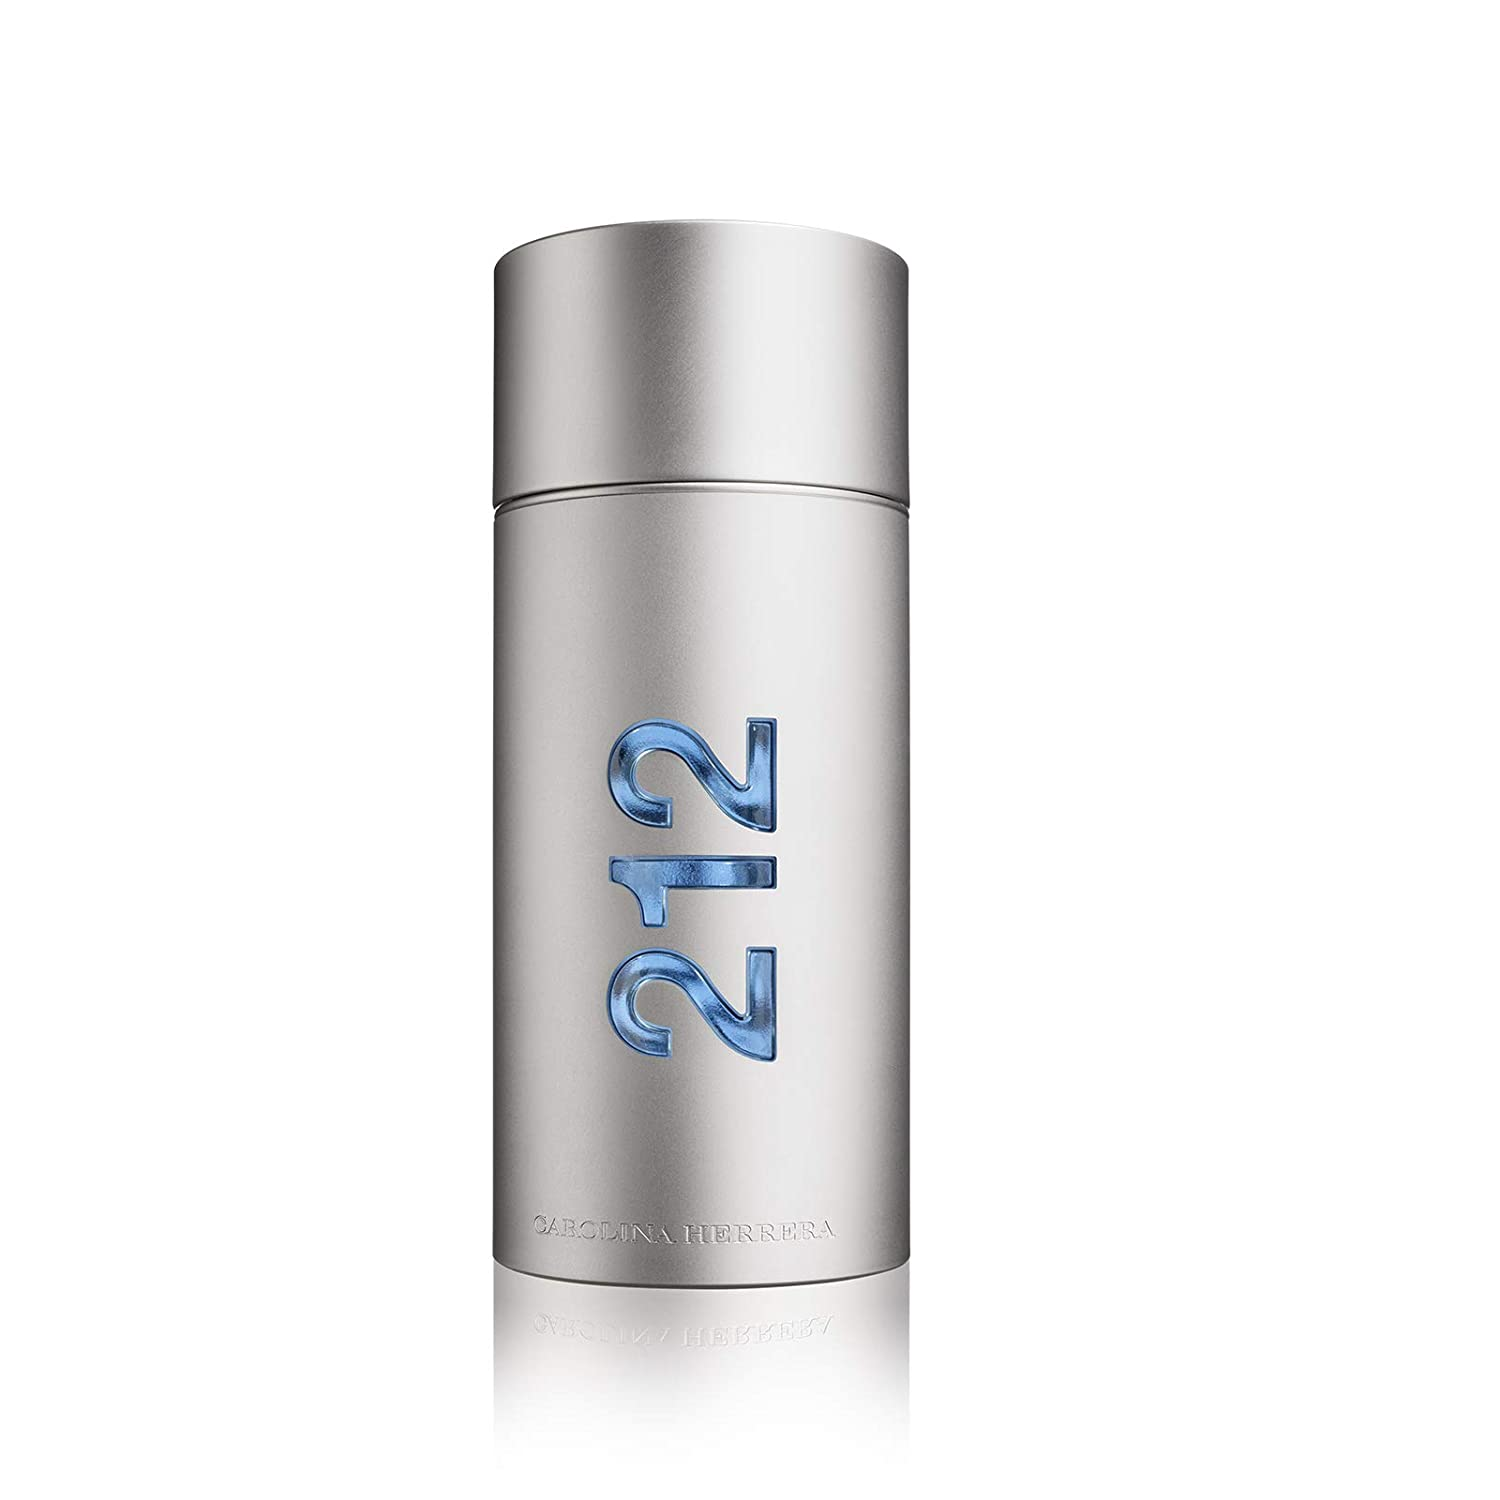 Carolina Herrera 212 Men NYC Agua de Tocador Vaporizador - 200 ml: Amazon.es